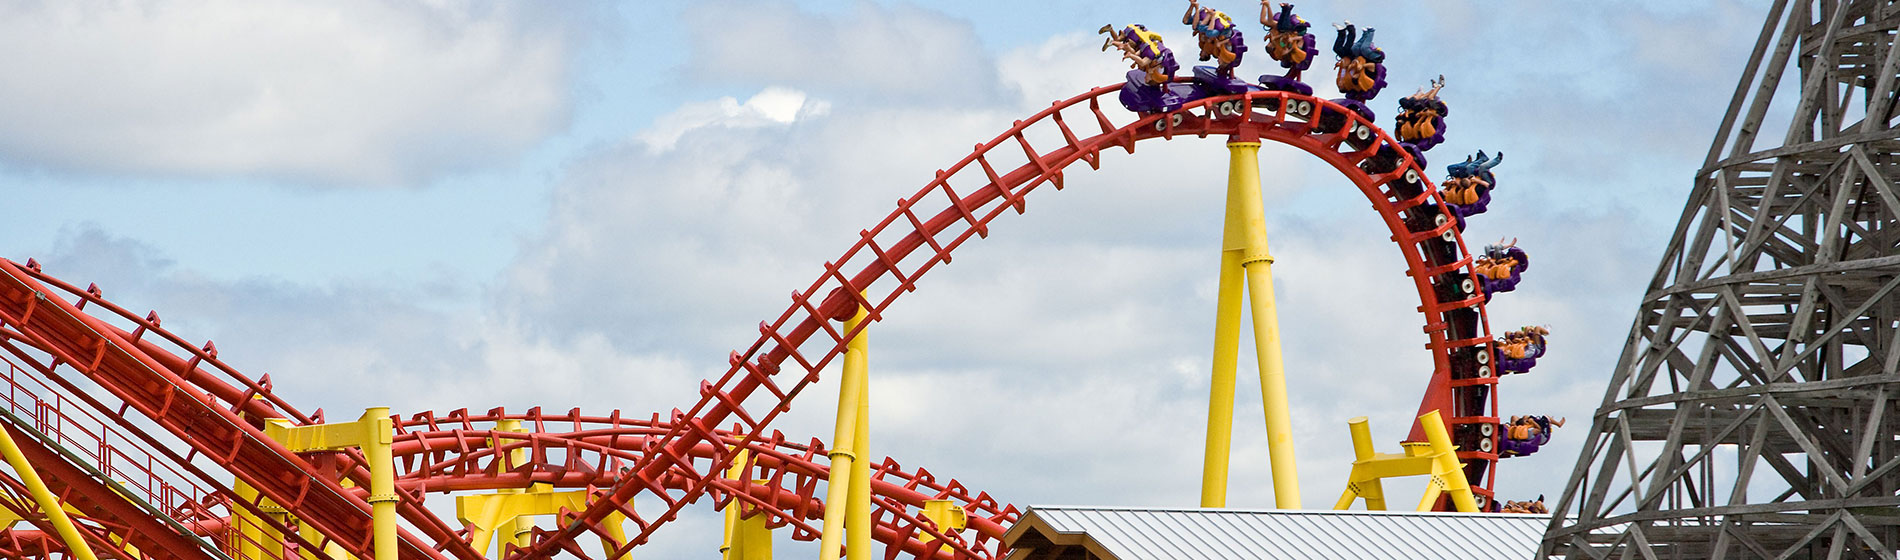 Thunderhawk Roller Coaster at Michigan's Adventure